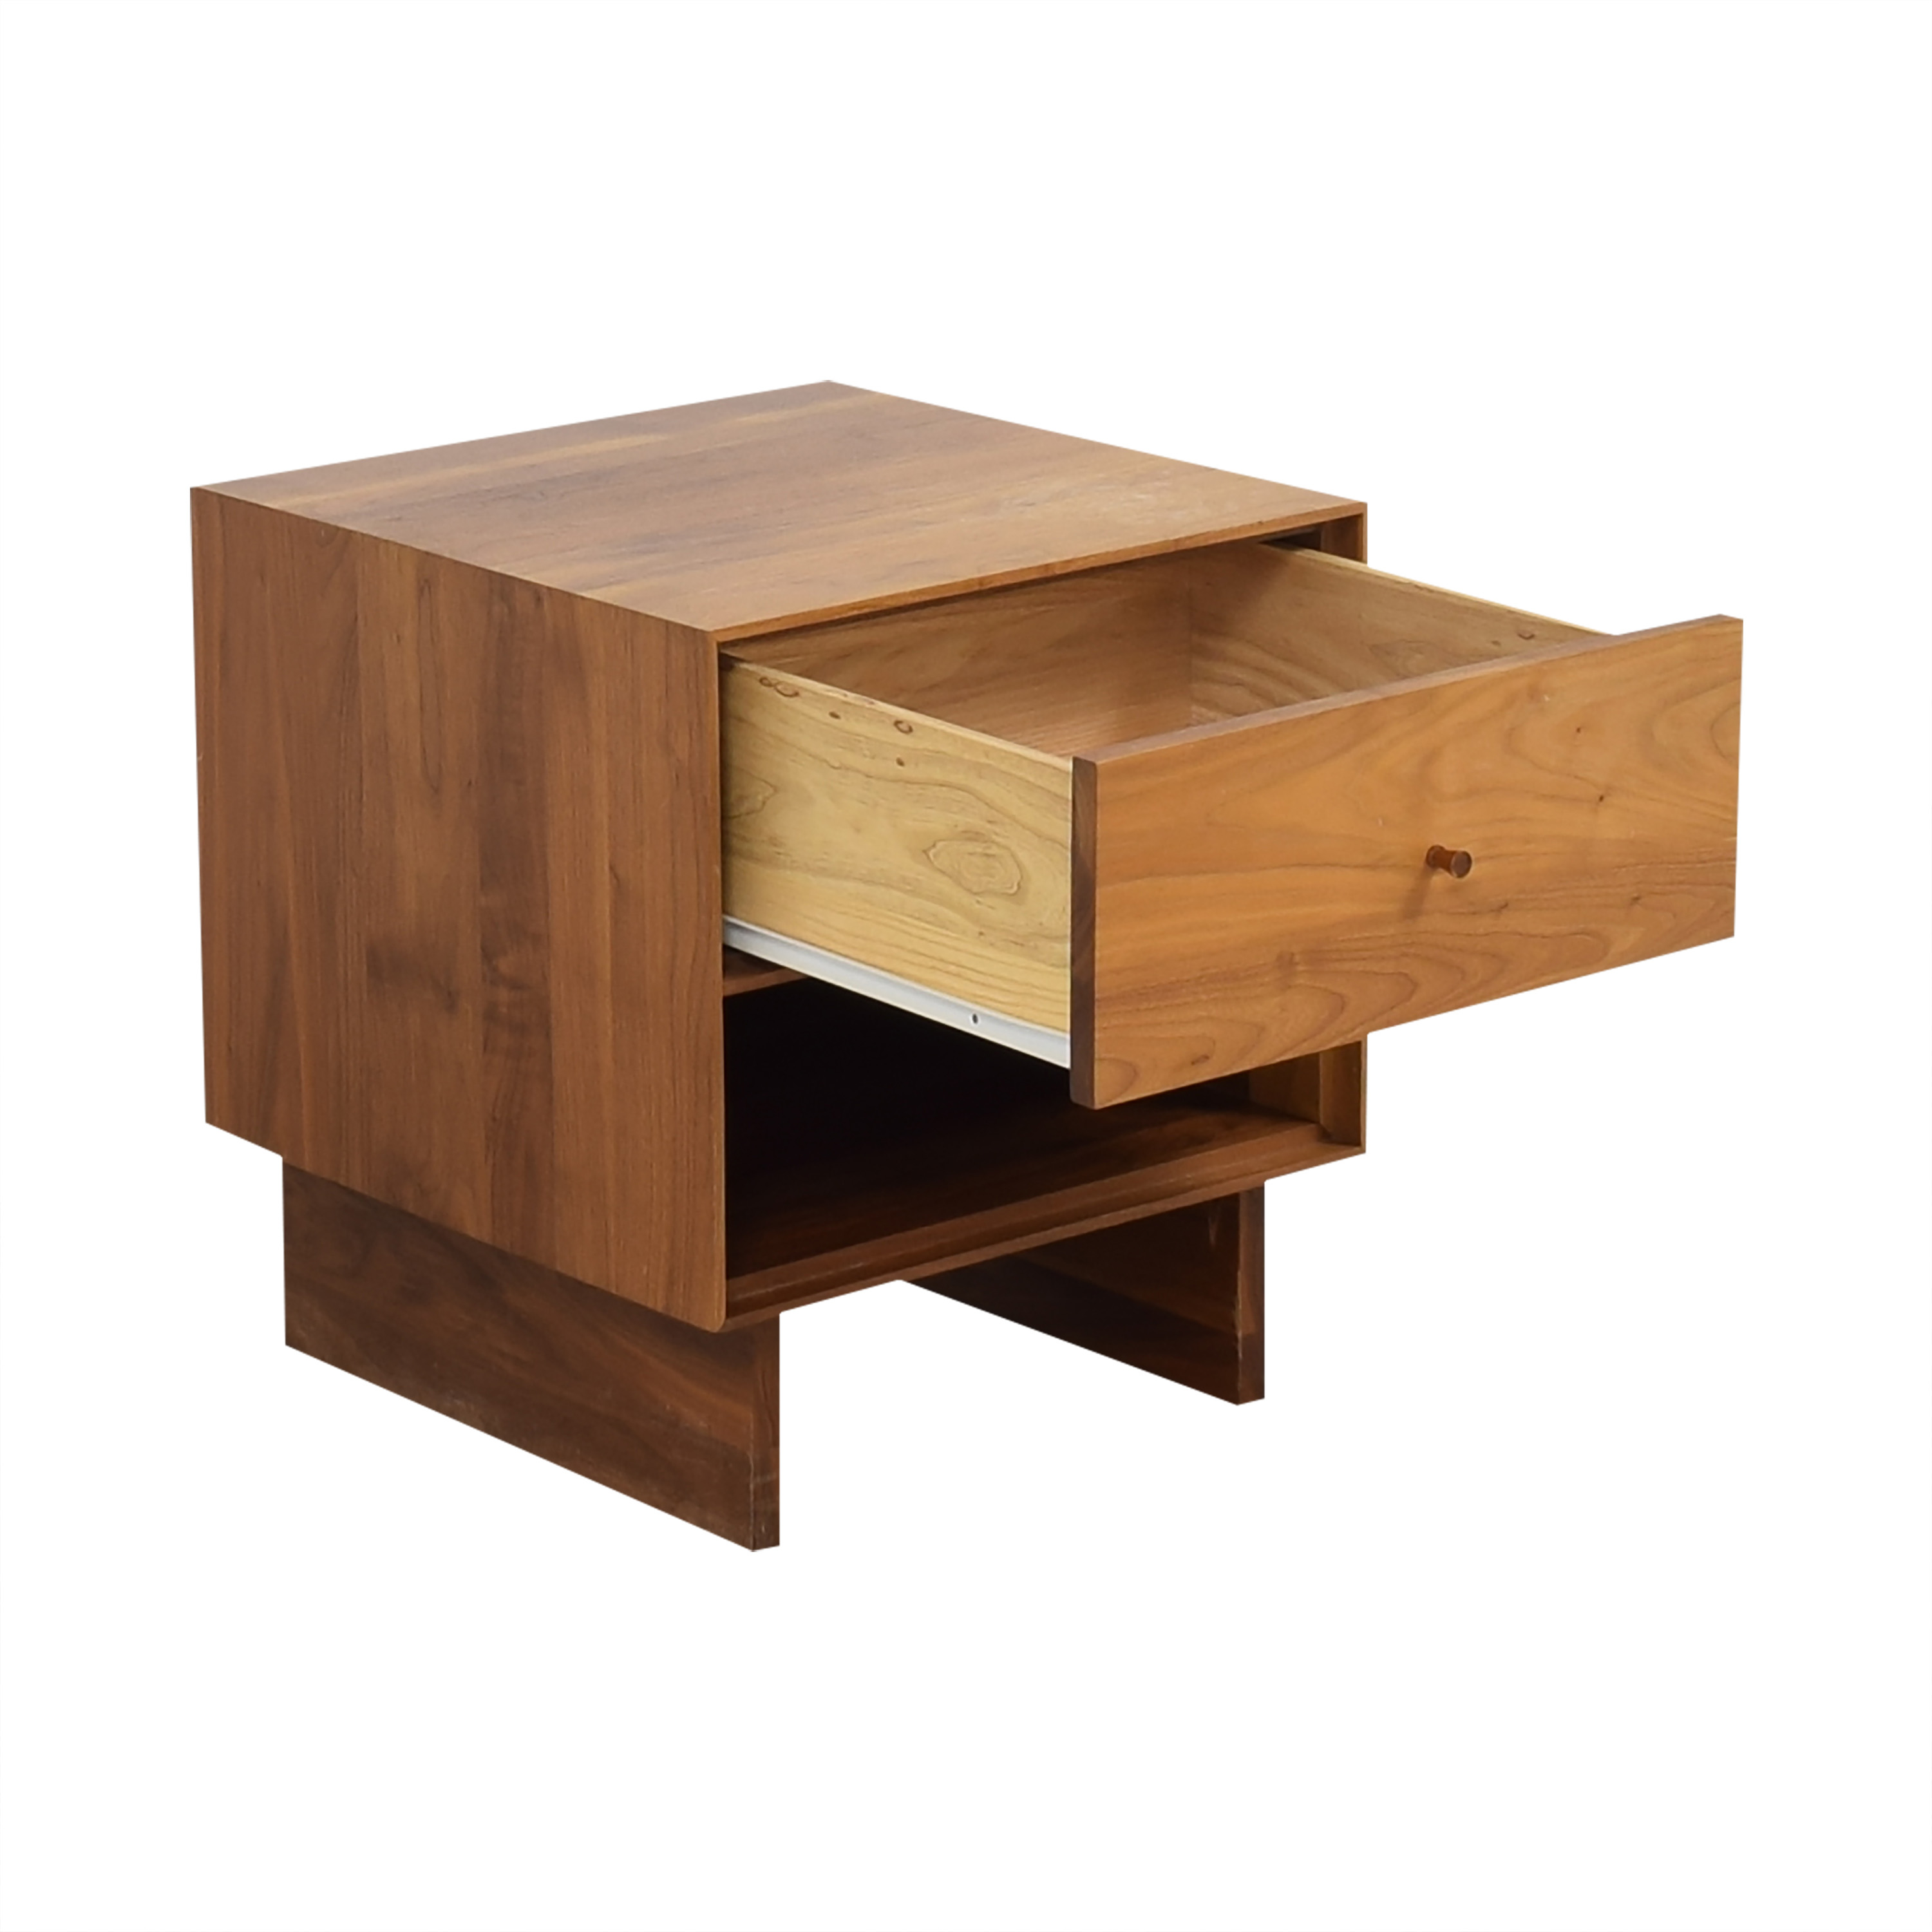 Room & Board Room & Board Hudson One-Drawer Nightstand with Wood Base for sale